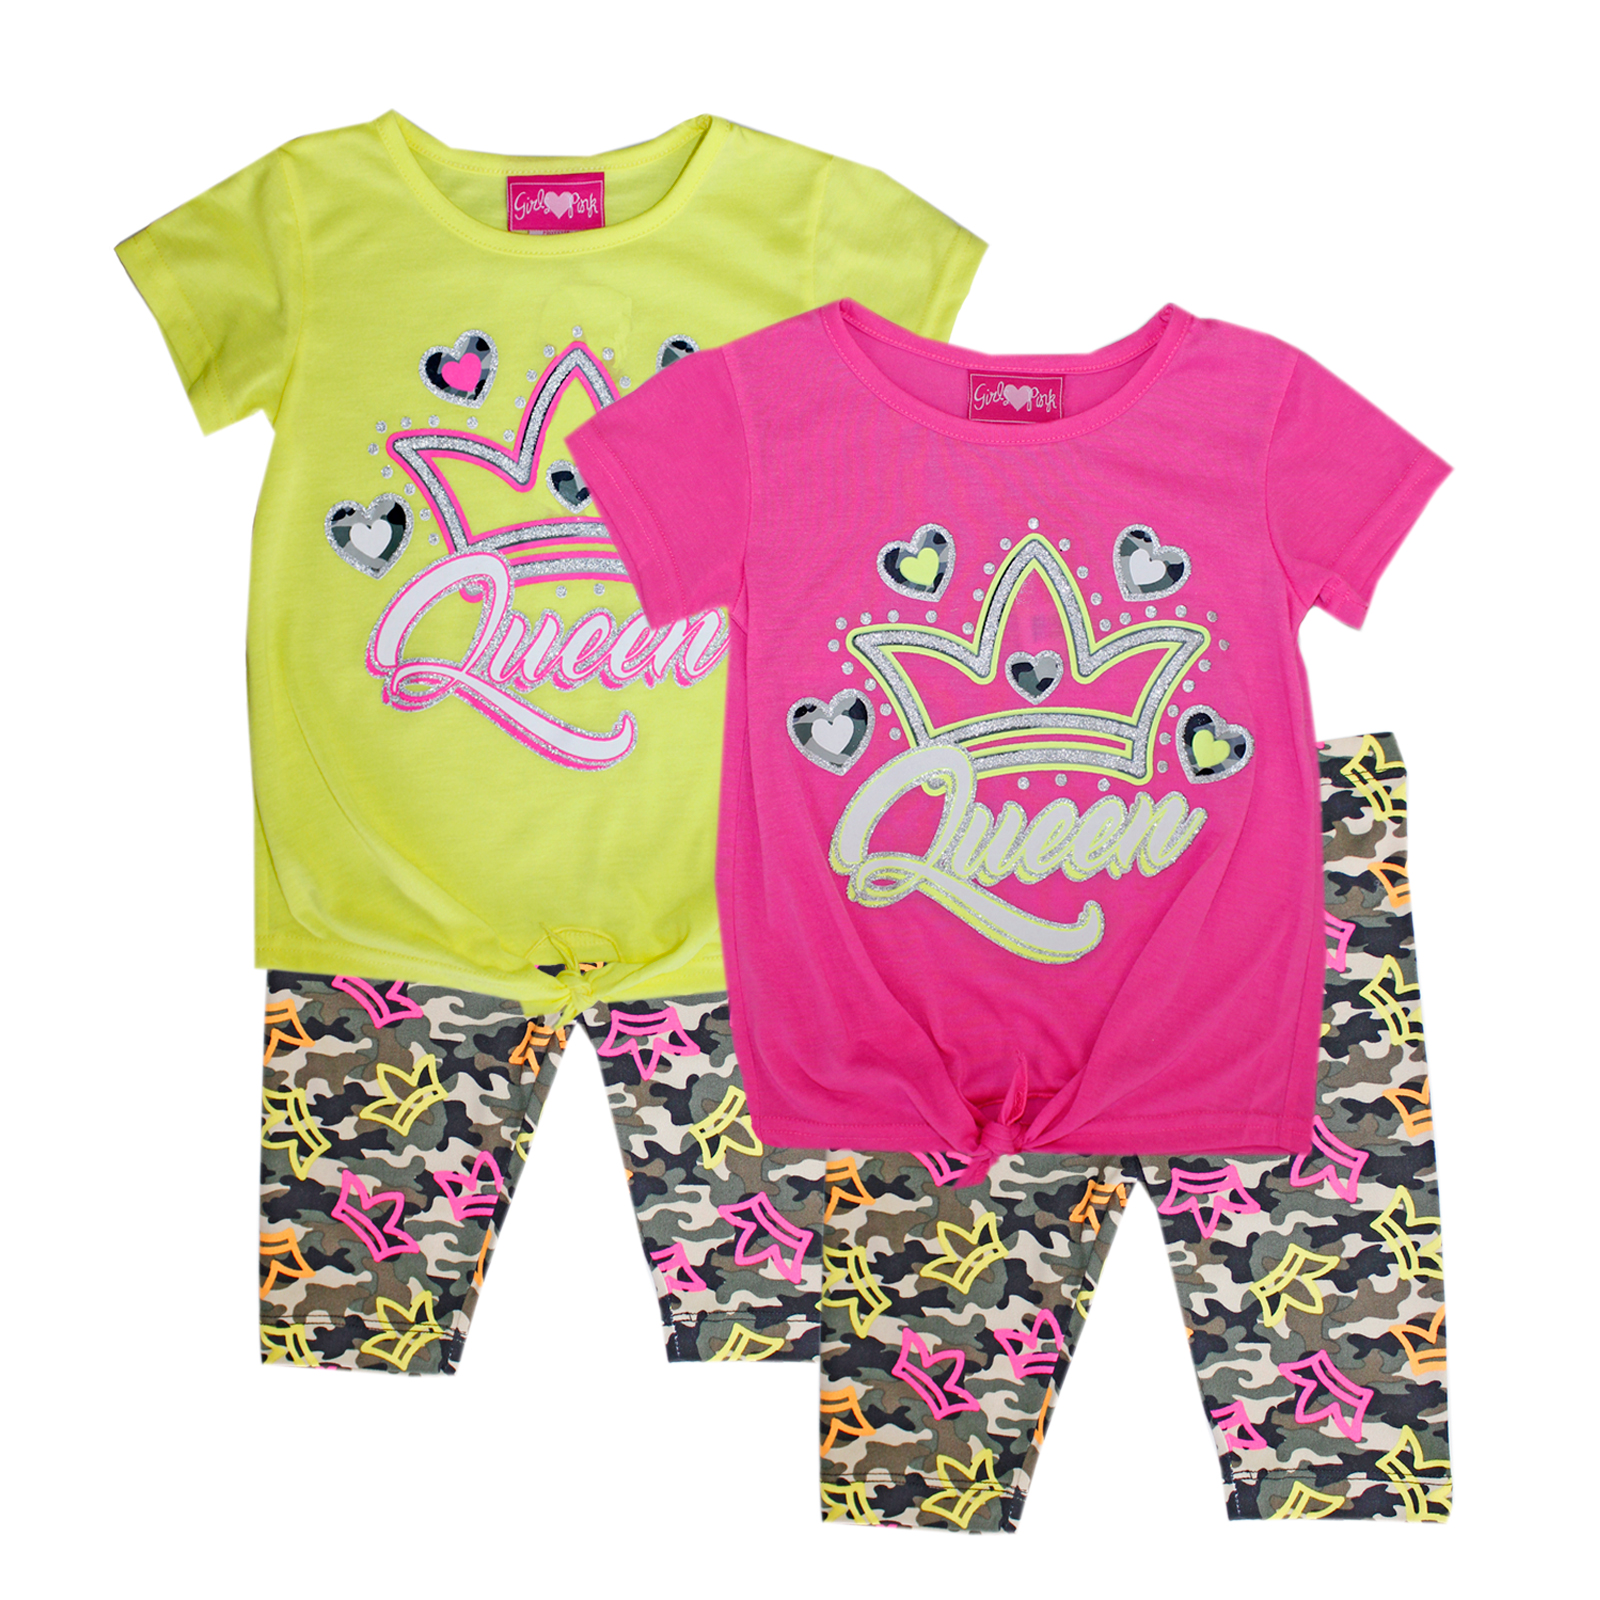 GIRLS PINK 4-6X Tie Front Top Biker Set